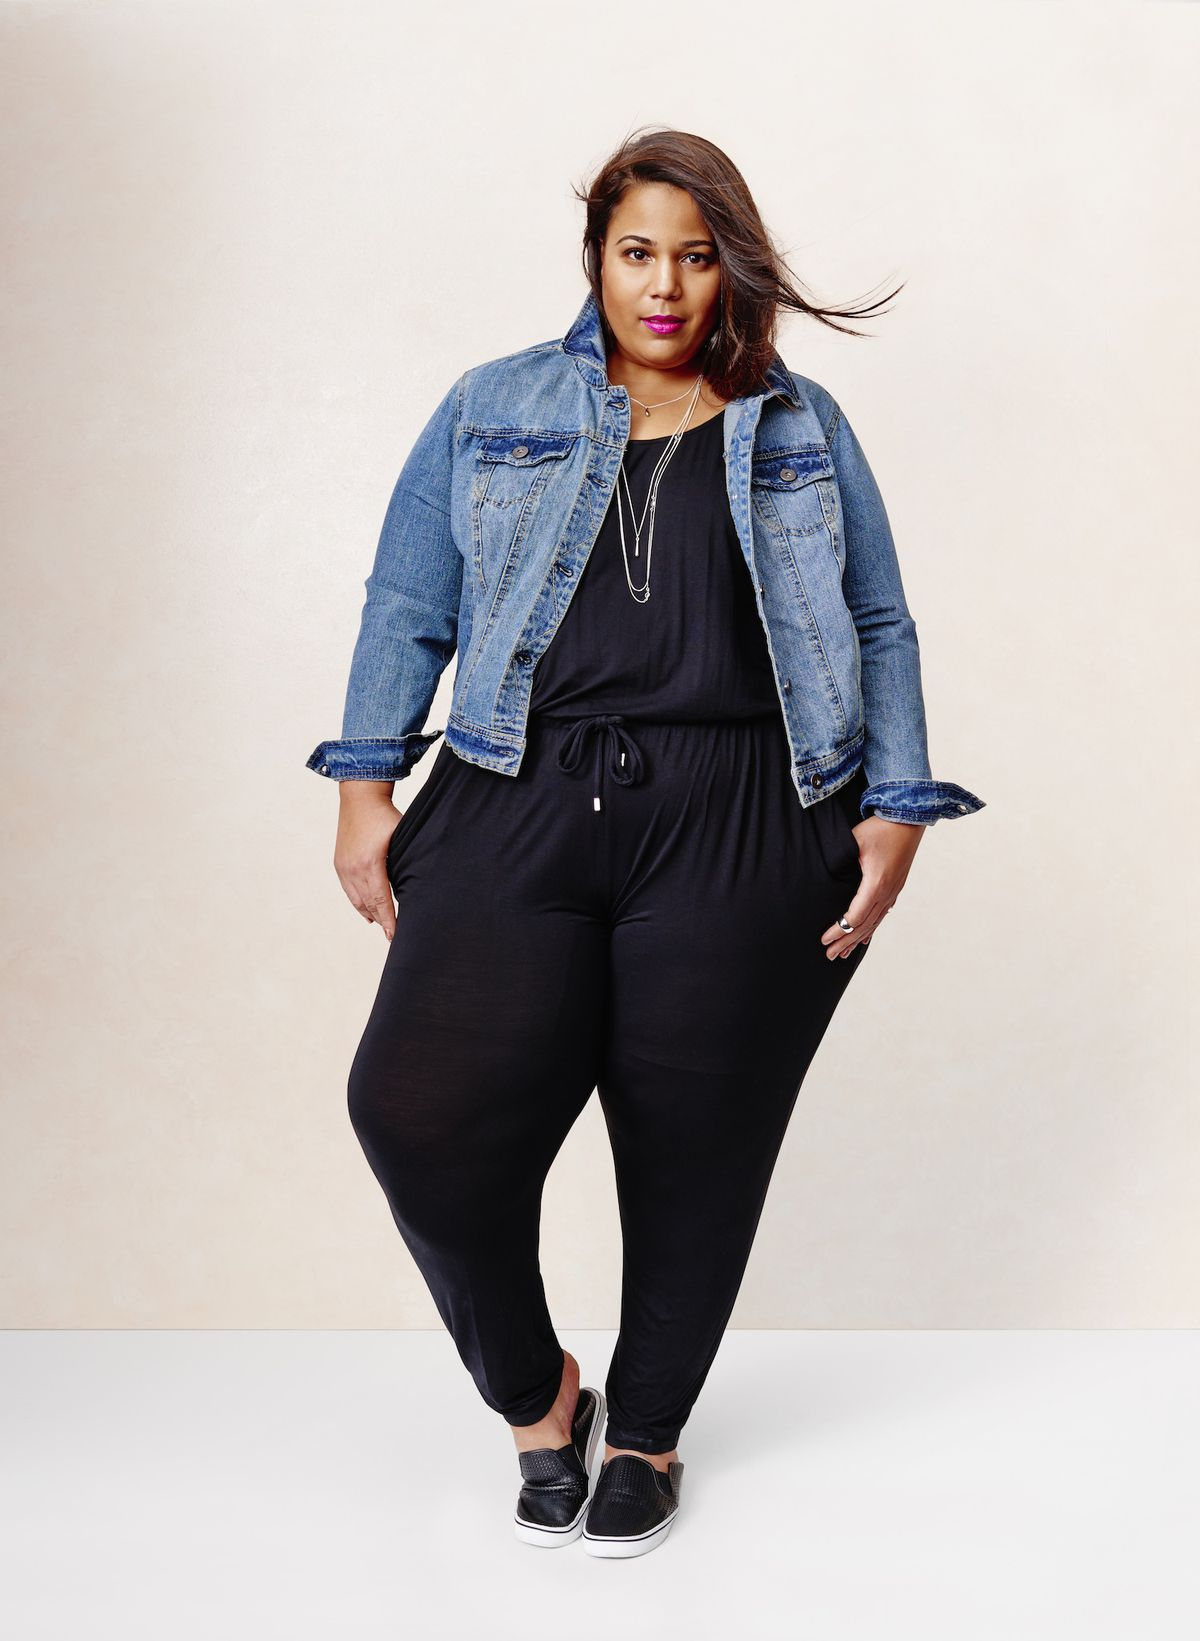 b2e54e03b1b Target and Other Mass Retailers Are Finally Taking Plus-Size ...